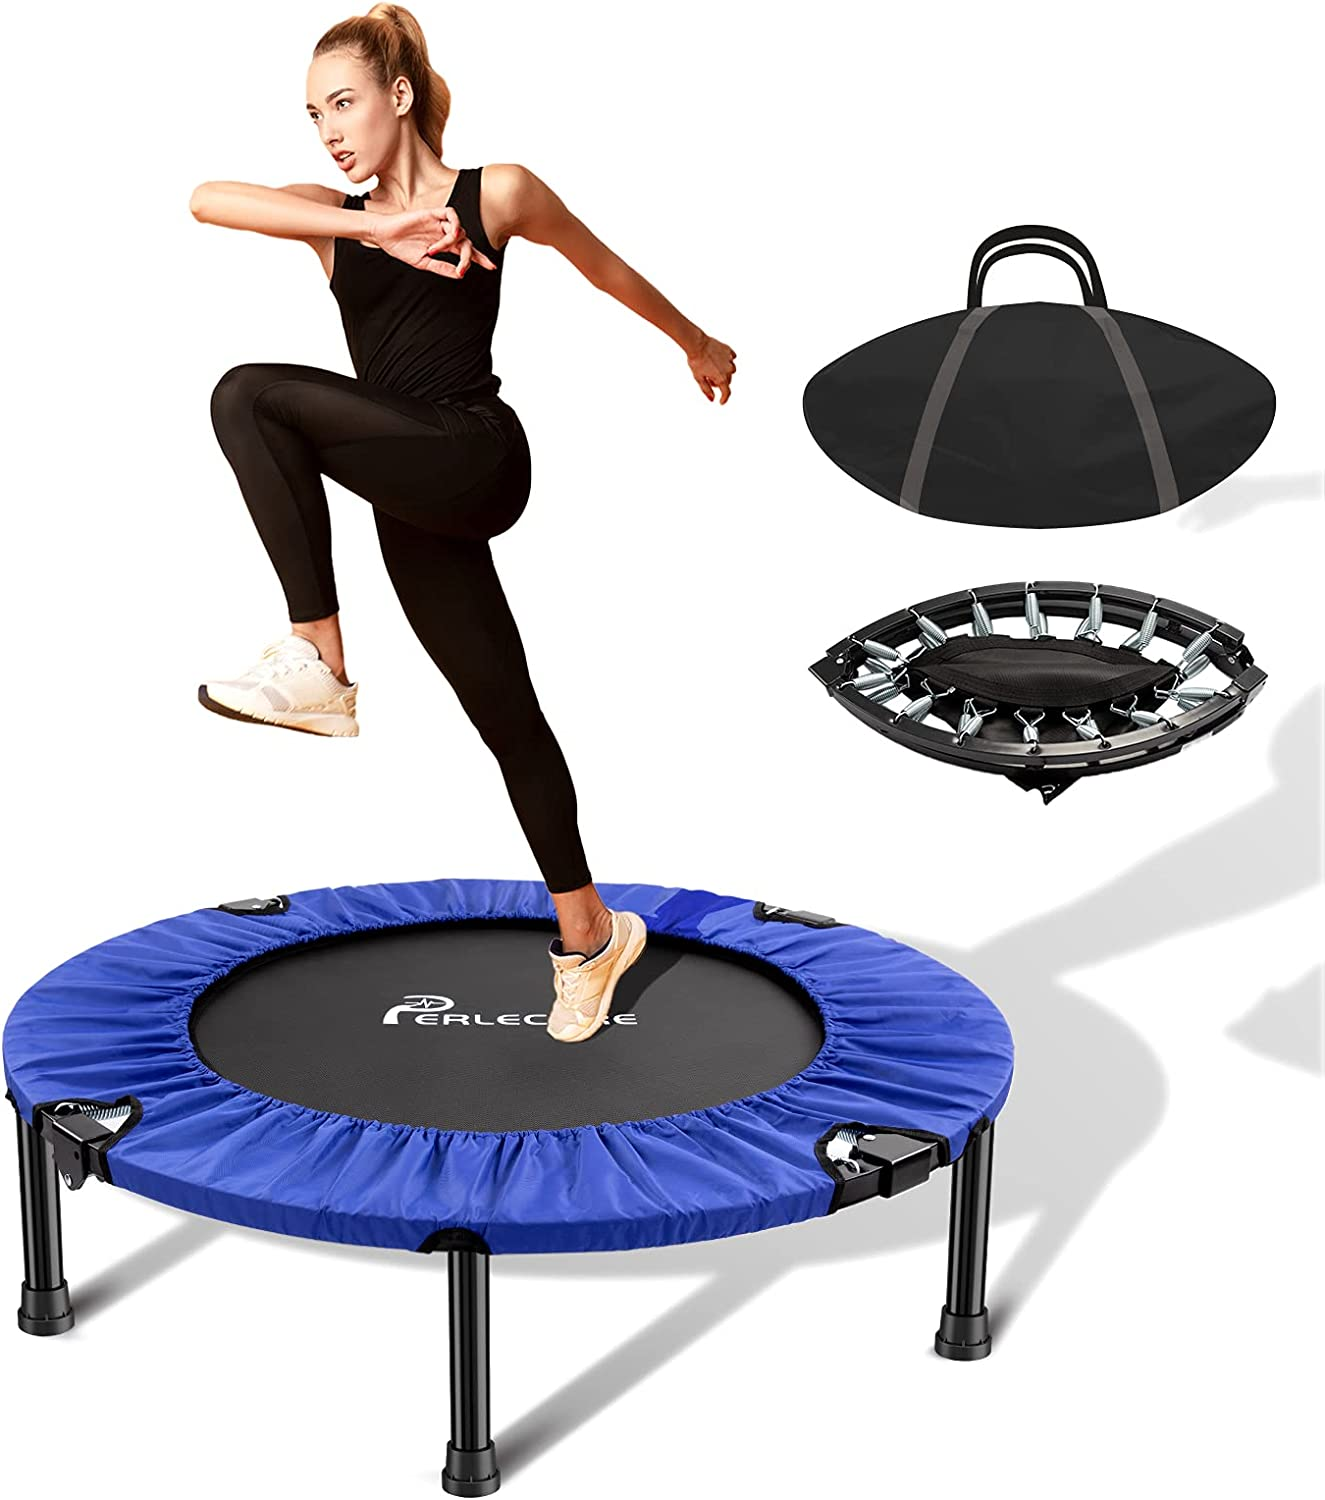 """PERLECARE 38"""" Mini Trampoline for Kids Adults, Safety Indoor Rebounder Trampoline, Folding Small Trampoline with Storage Bag for Home Exercise Fitness, Max Load 300lbs"""